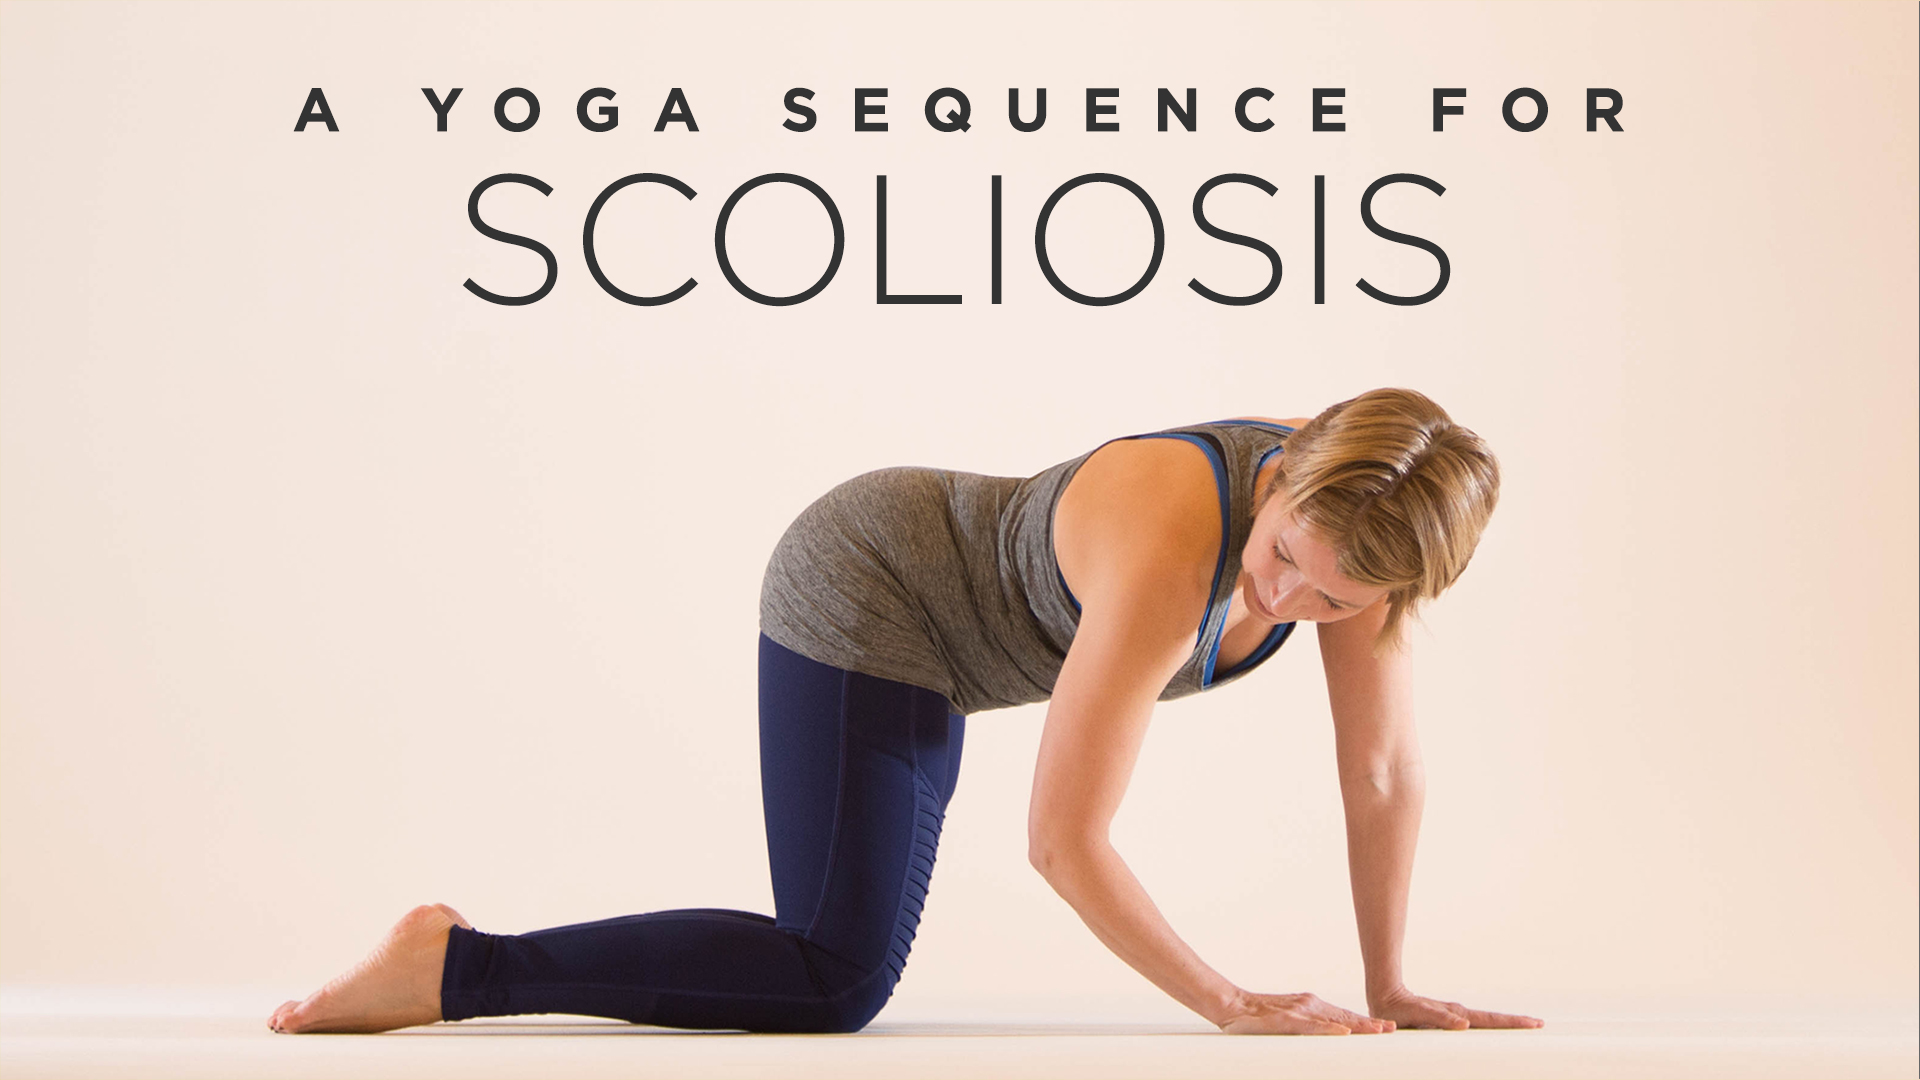 A Yoga Sequence for Scoliosis | Yoga International